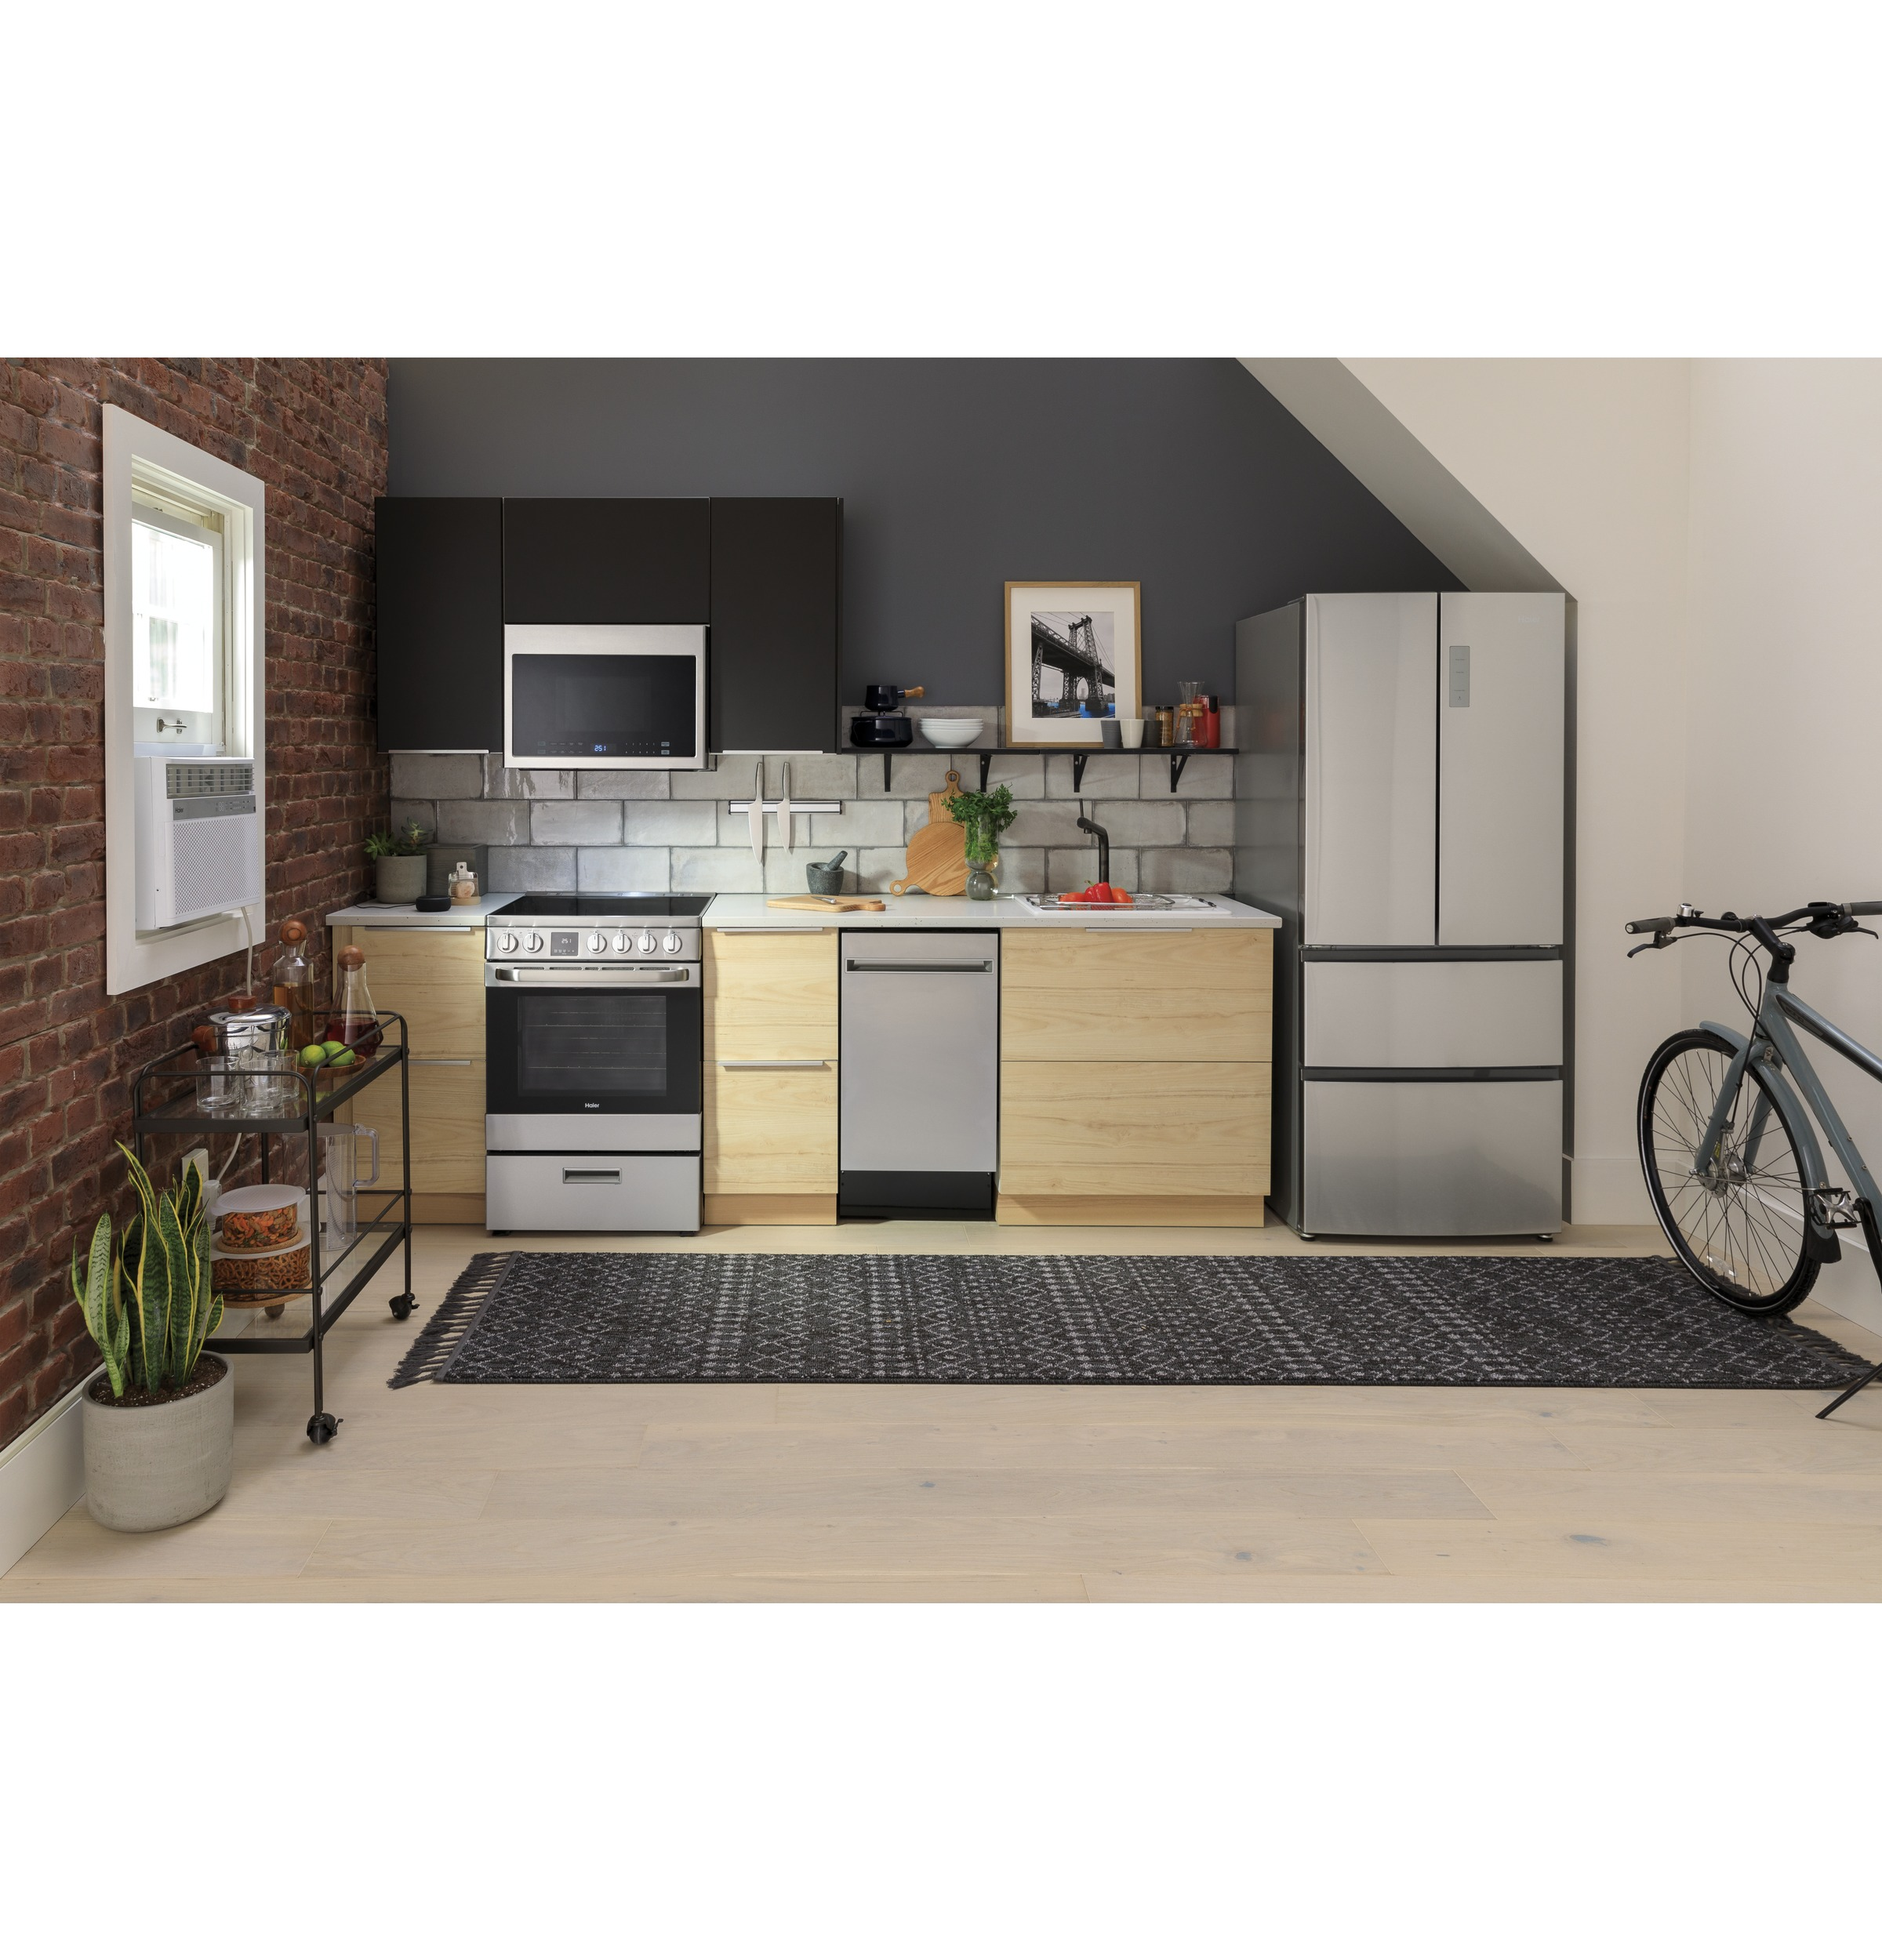 Haier QAS740RMSS 24 Electric Freestanding Range with Convection and Modular Backguard 2.9 cu Oven Capacity Storage Drawer 4 Element in Stainless Steel ft